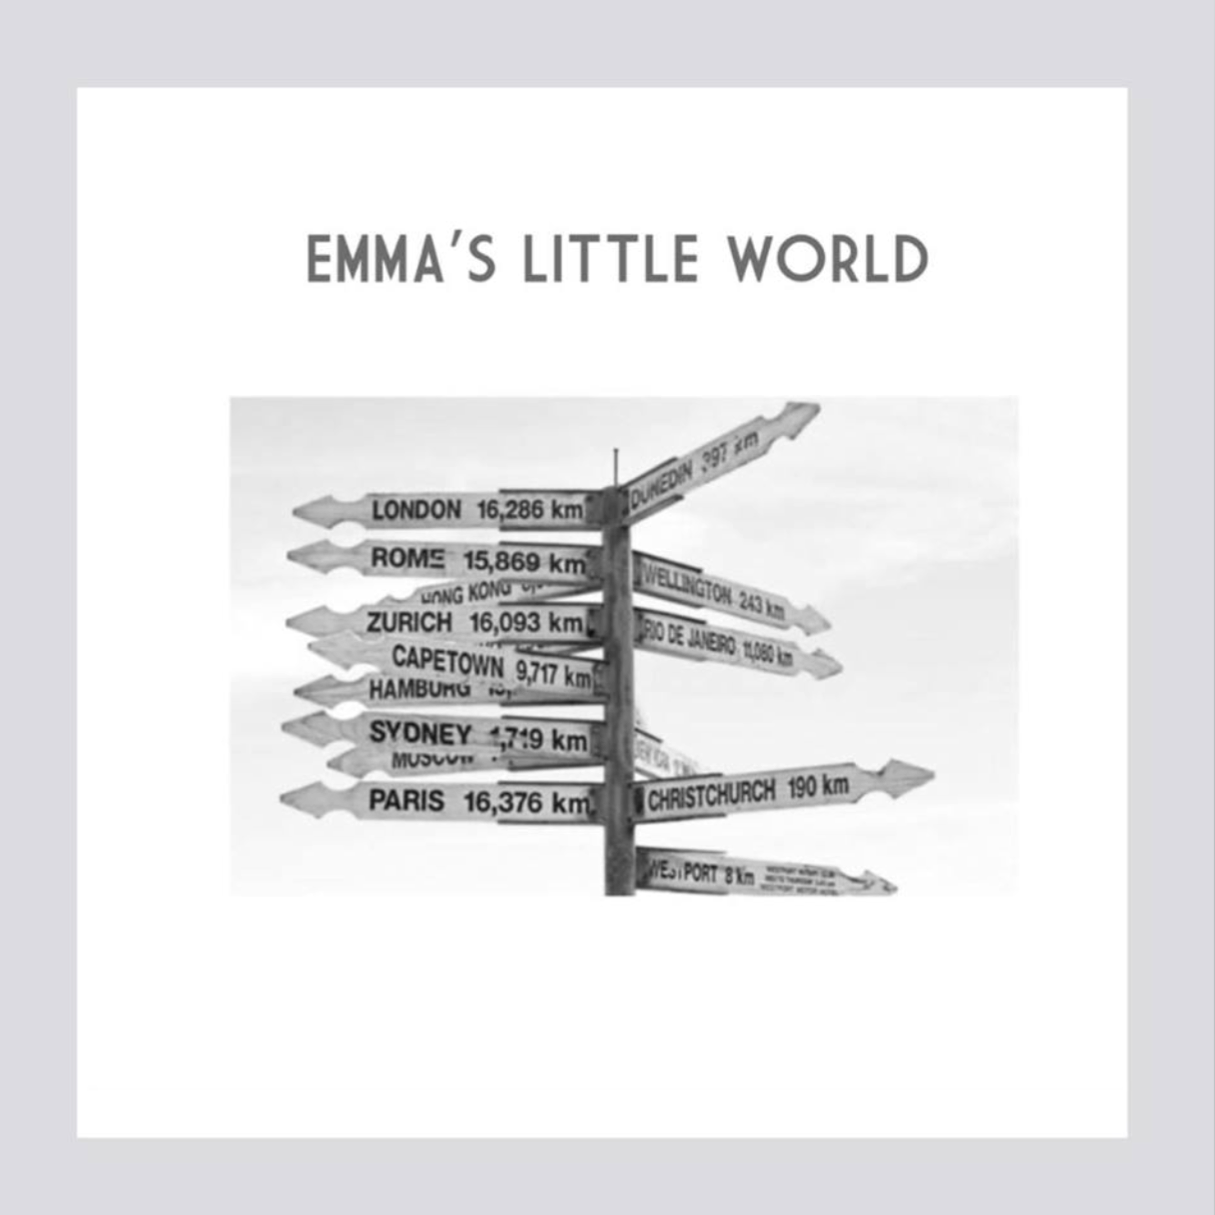 EMMA' S LITTLE WORLD